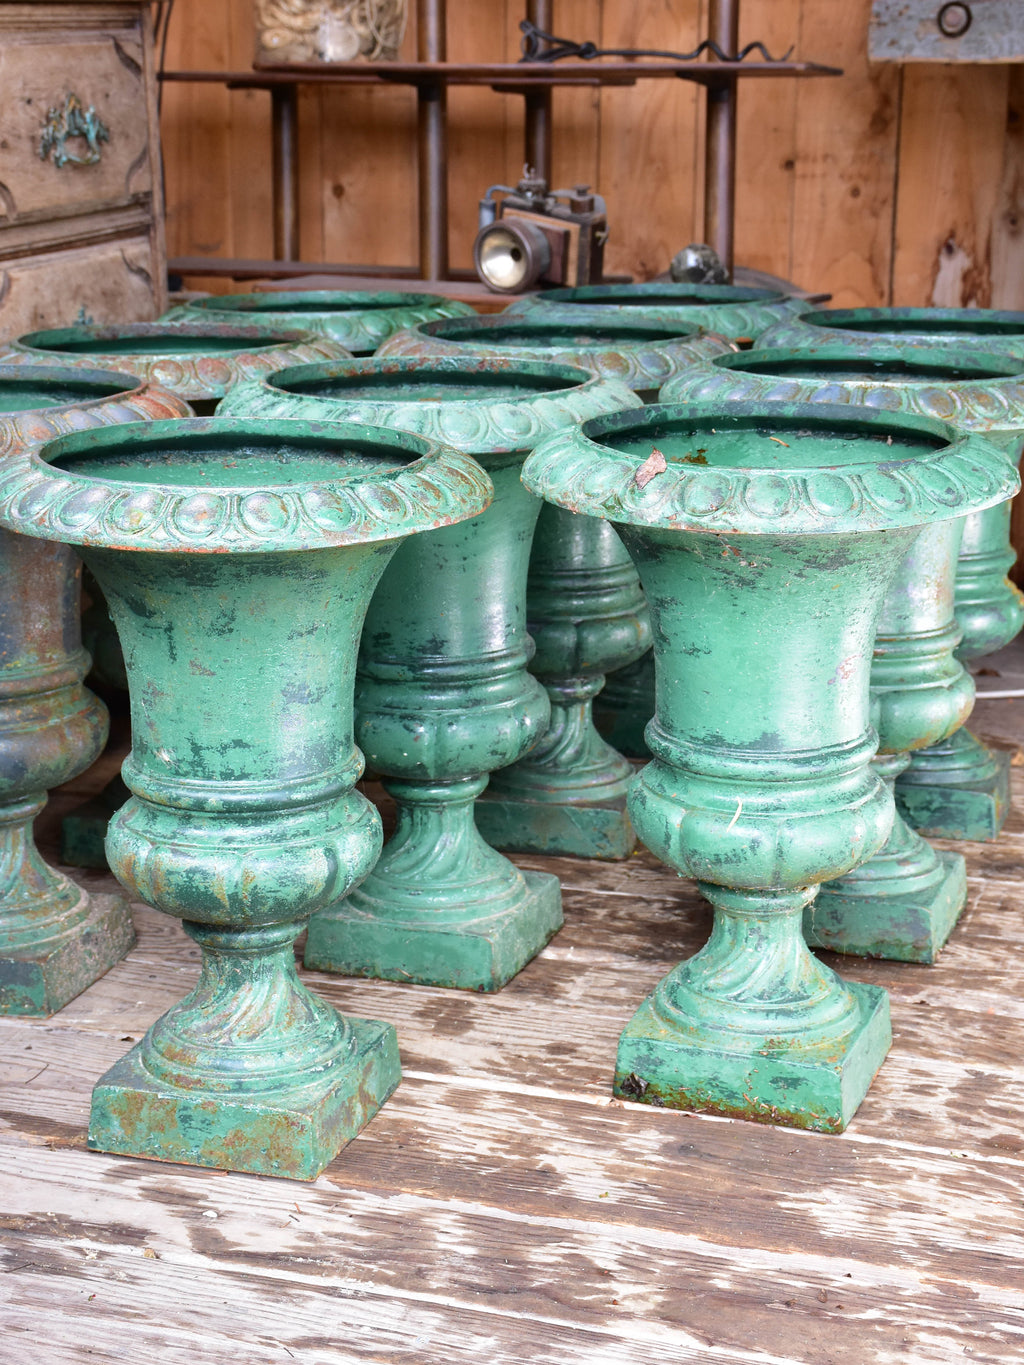 Rare collection of 8 Medici urns with green patina